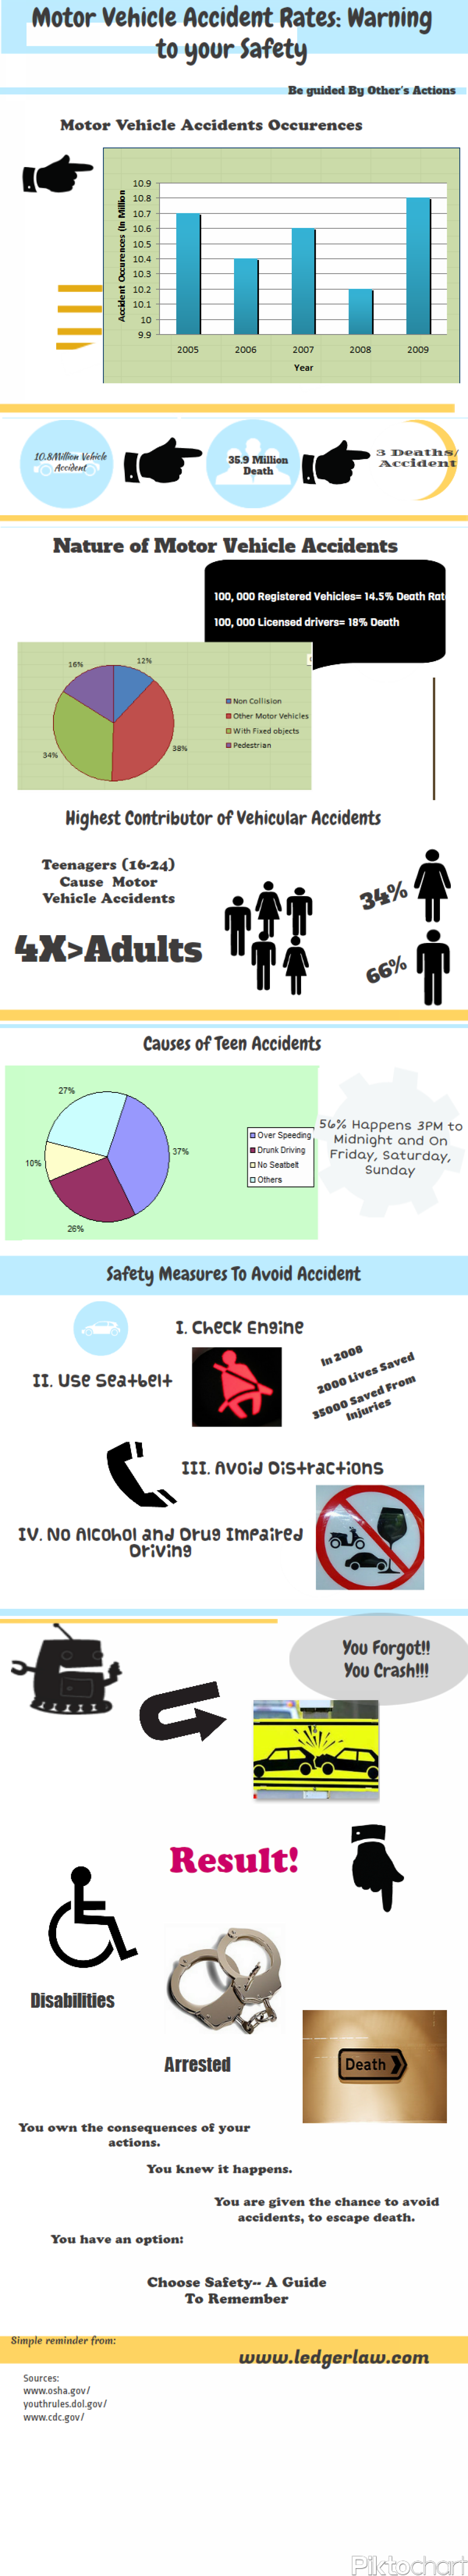 Motor Vehicle Accident Rates: Warning To Your Safety Infographic